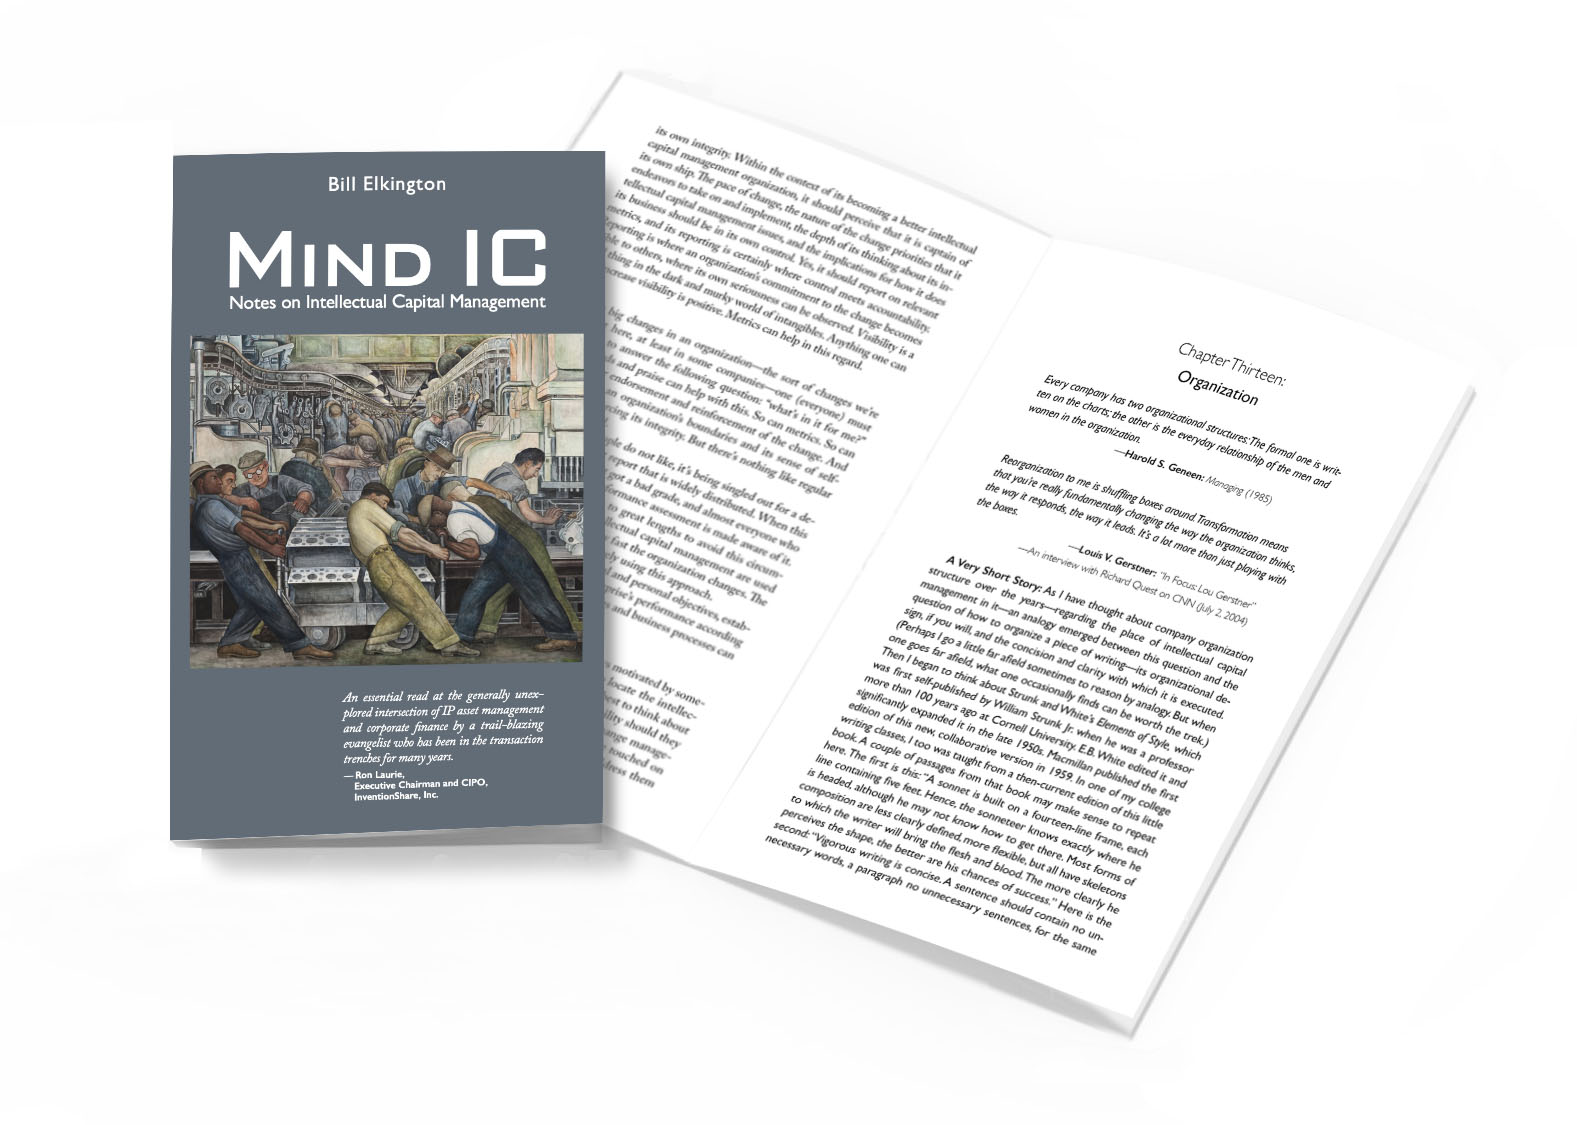 Book cover of MIND IC